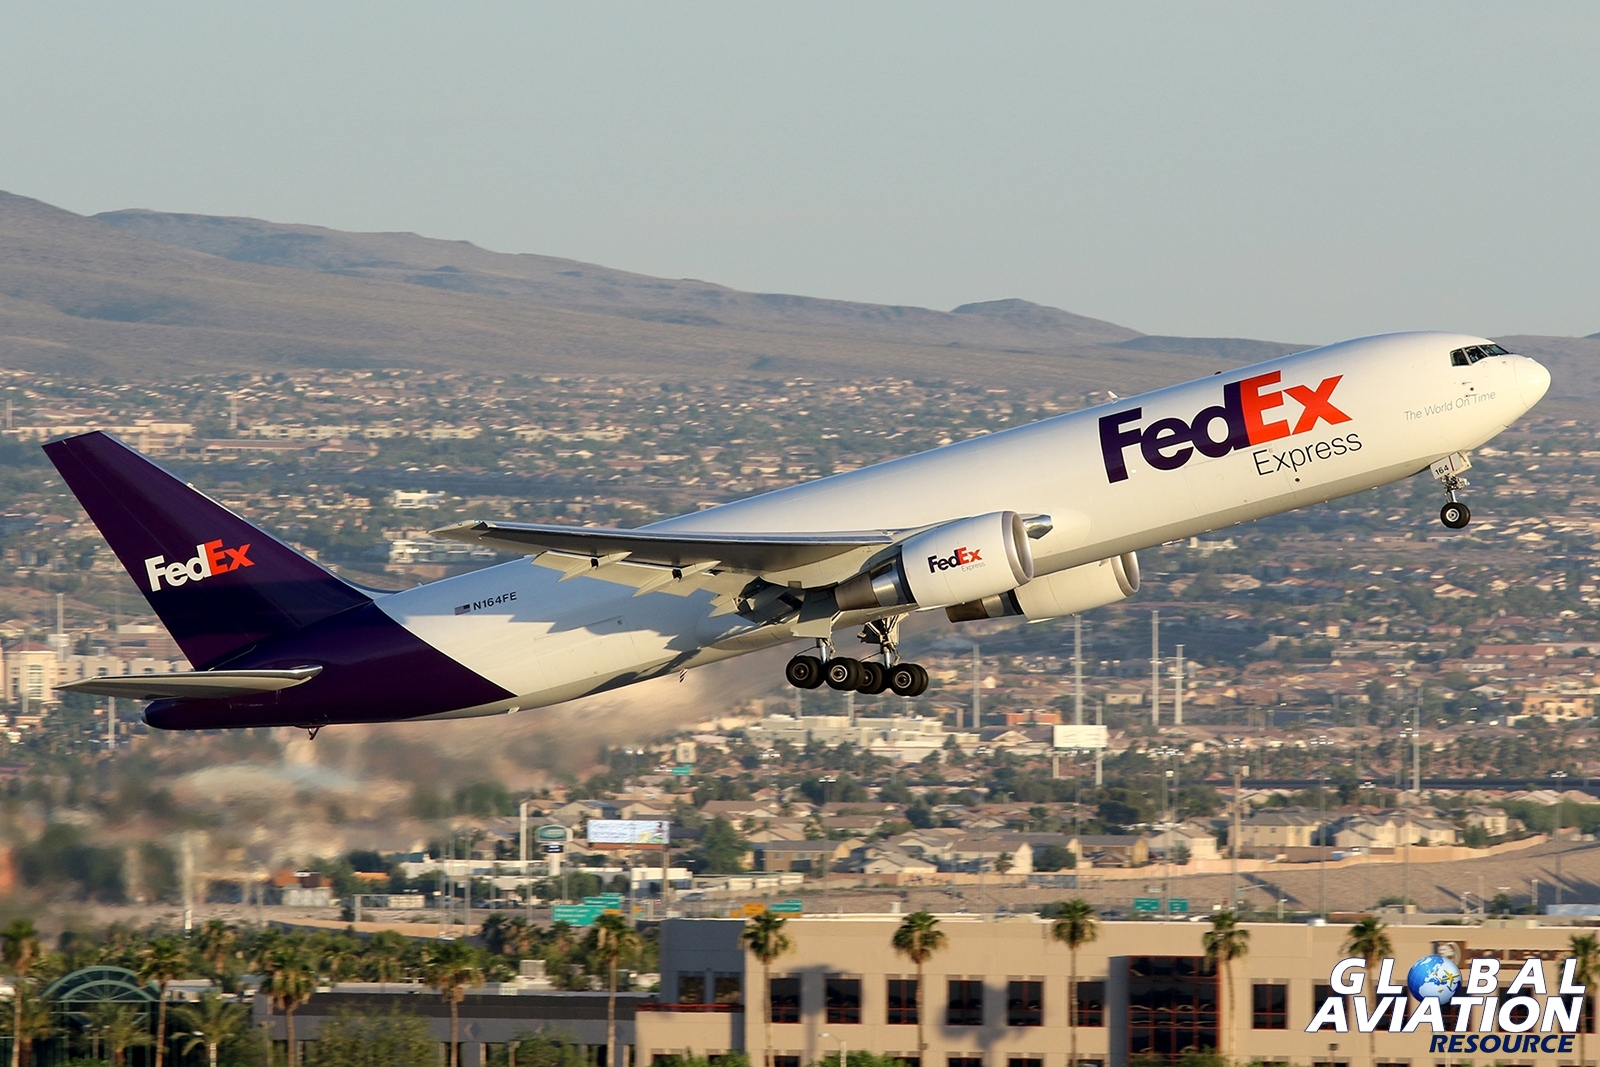 FedEX 767 departing Las Vegas McCarran © Paul Dunn - Global Aviation Resource